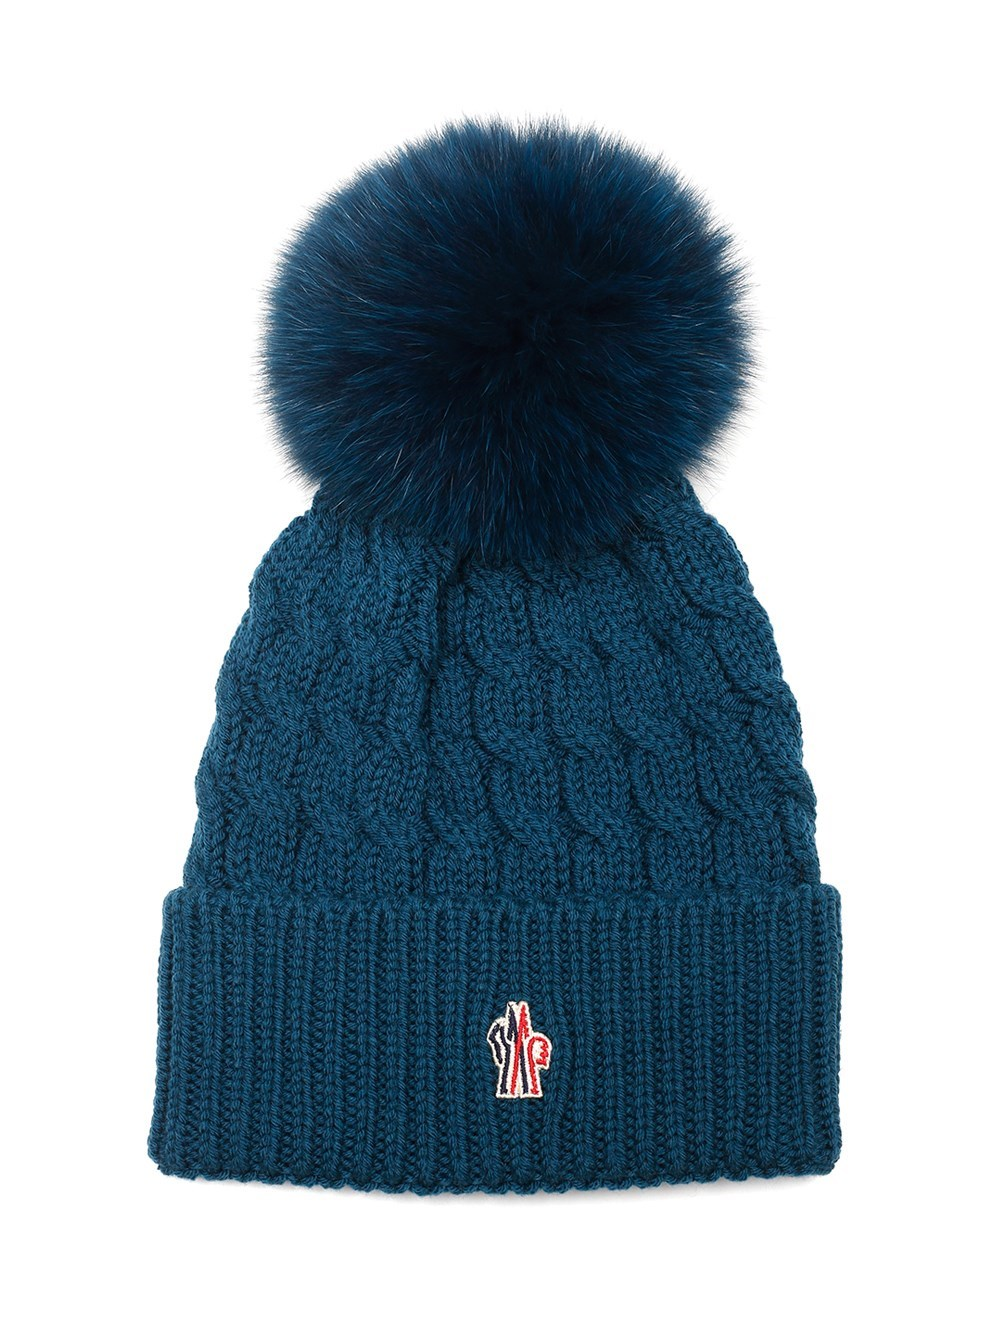 MONCLER GRENOBLE Blue Hat With Pon Pon